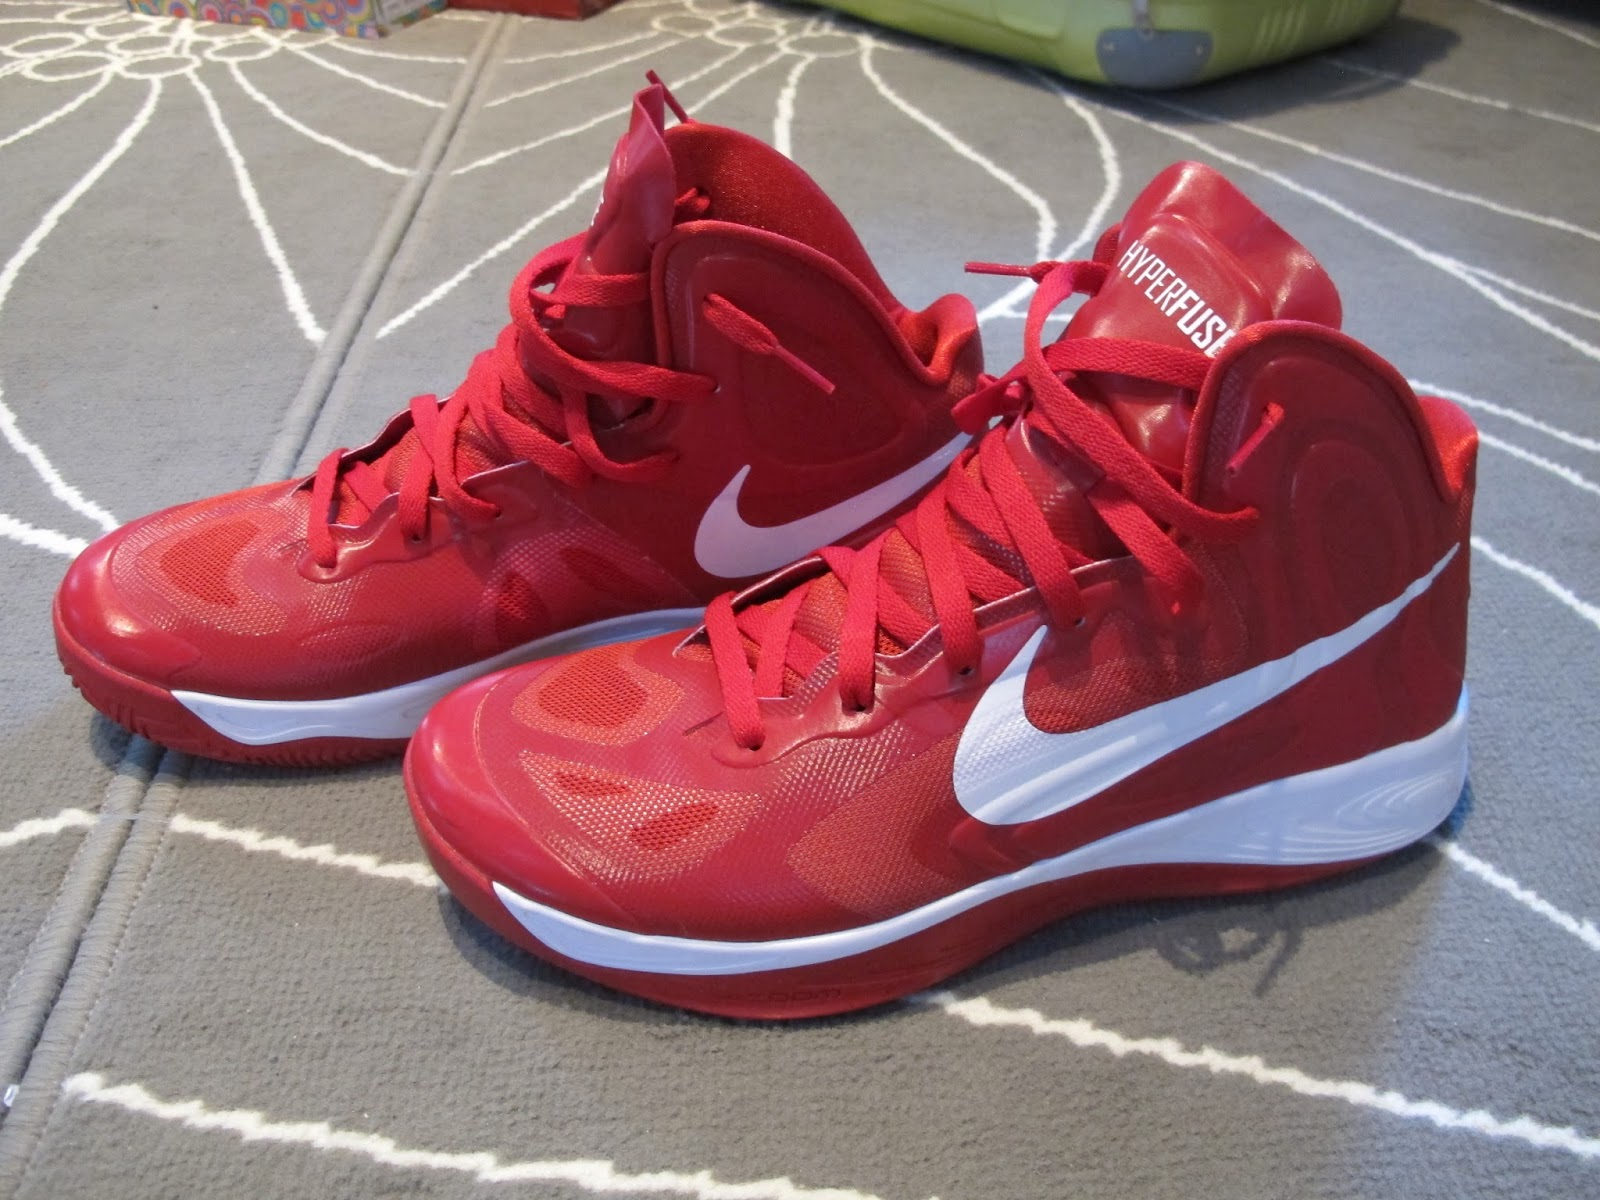 the best attitude b4125 650e1 Nike Zoom Hyperfuse 2012 High TB Edition - Red, White (525019-600)